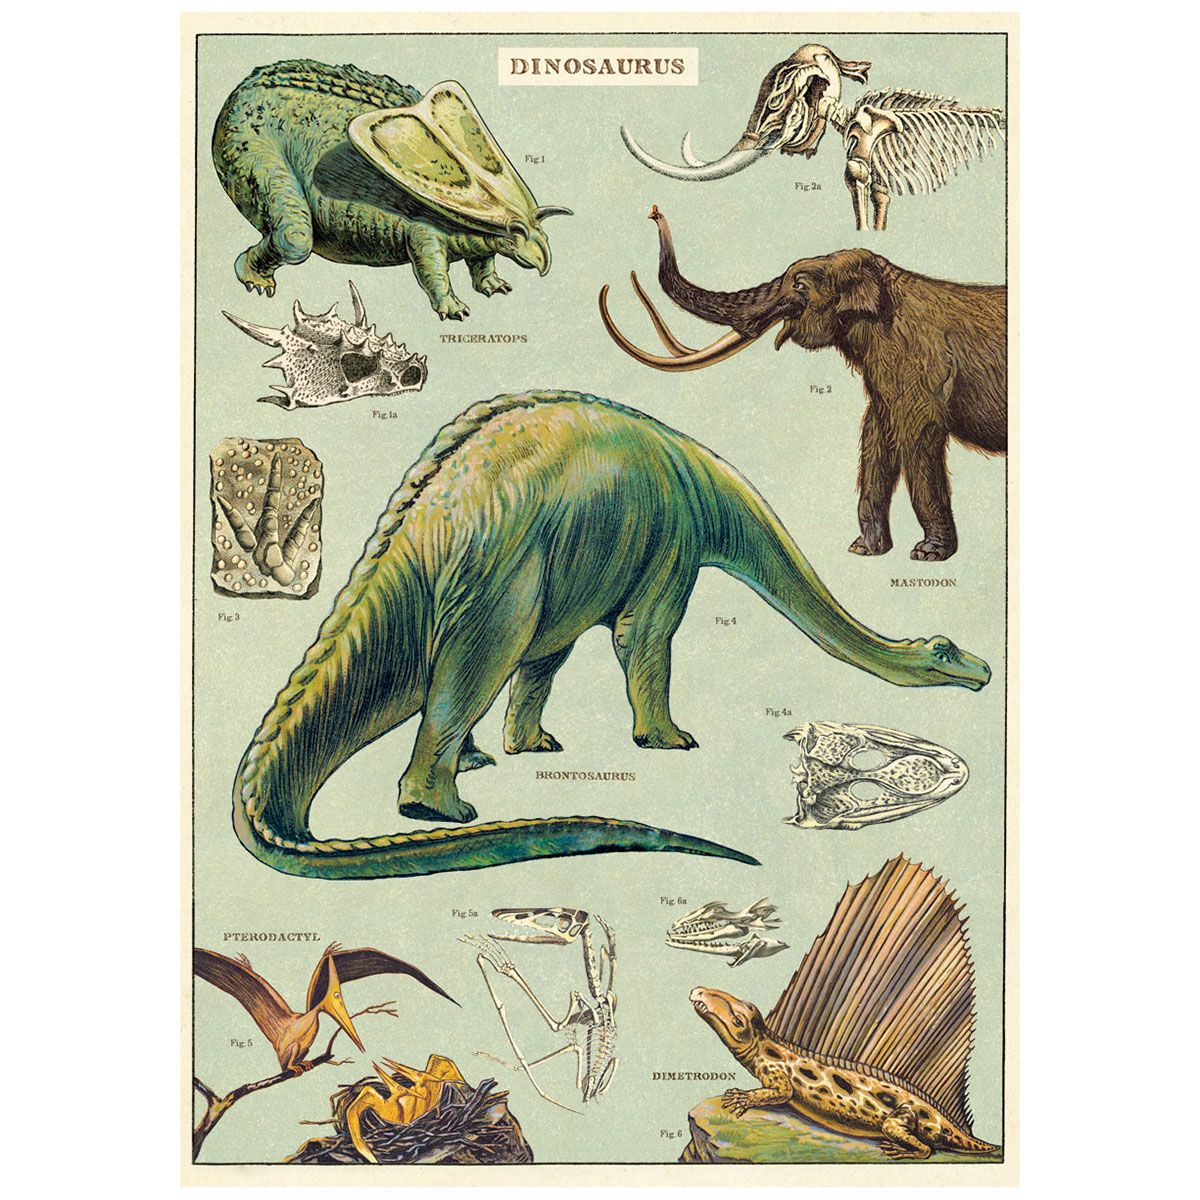 Dinosaurs Species Chart Vintage Style Poster Dinosaur Posters Dinosaur Illustration Dinosaur Images